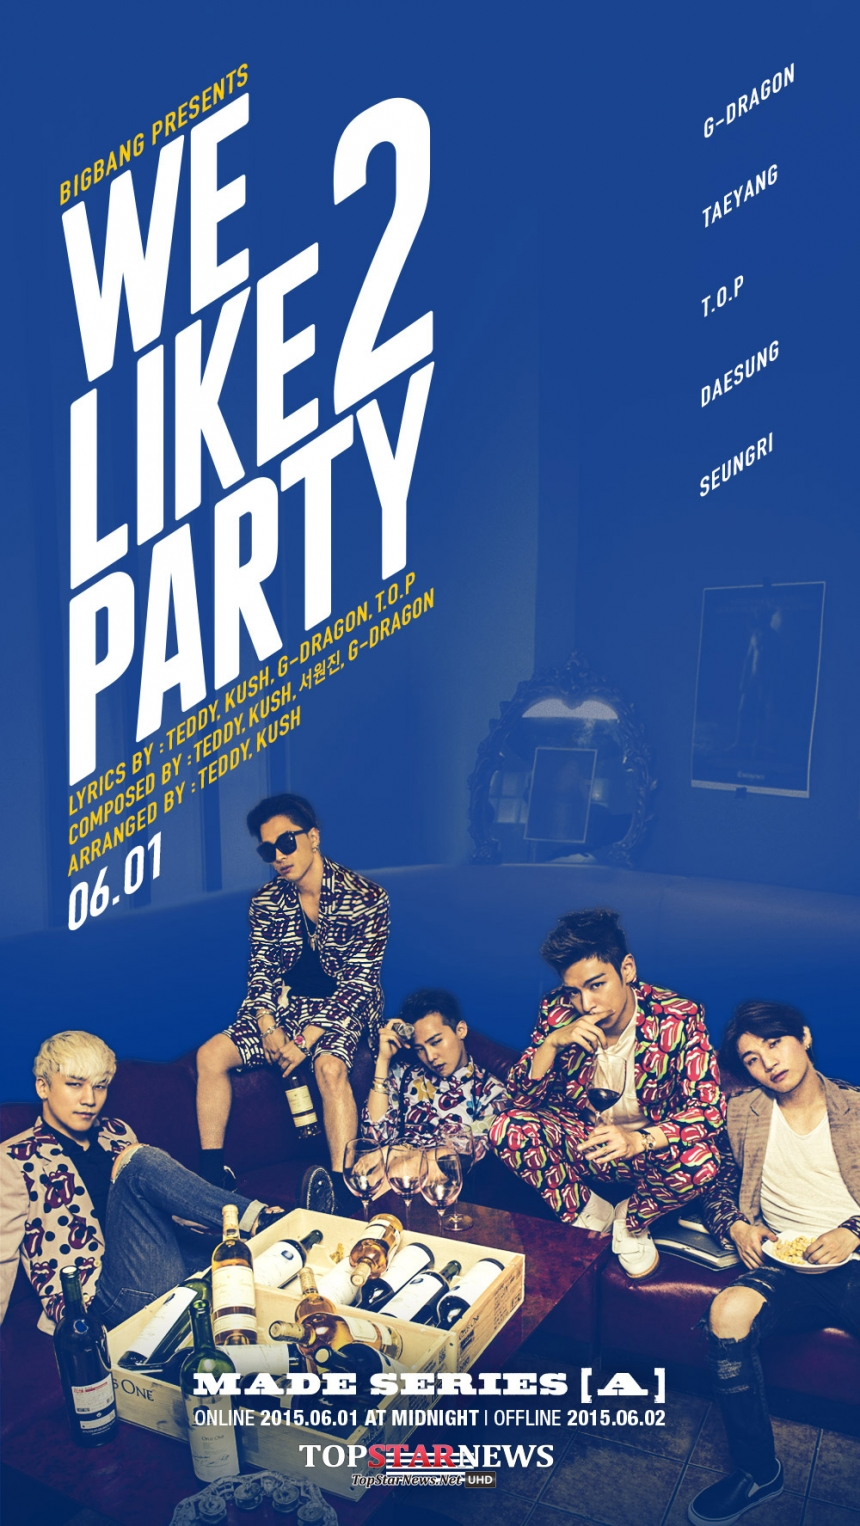 No. 11 BIGBANG - We Like 2 Party (2015.6.4) View: 2506萬